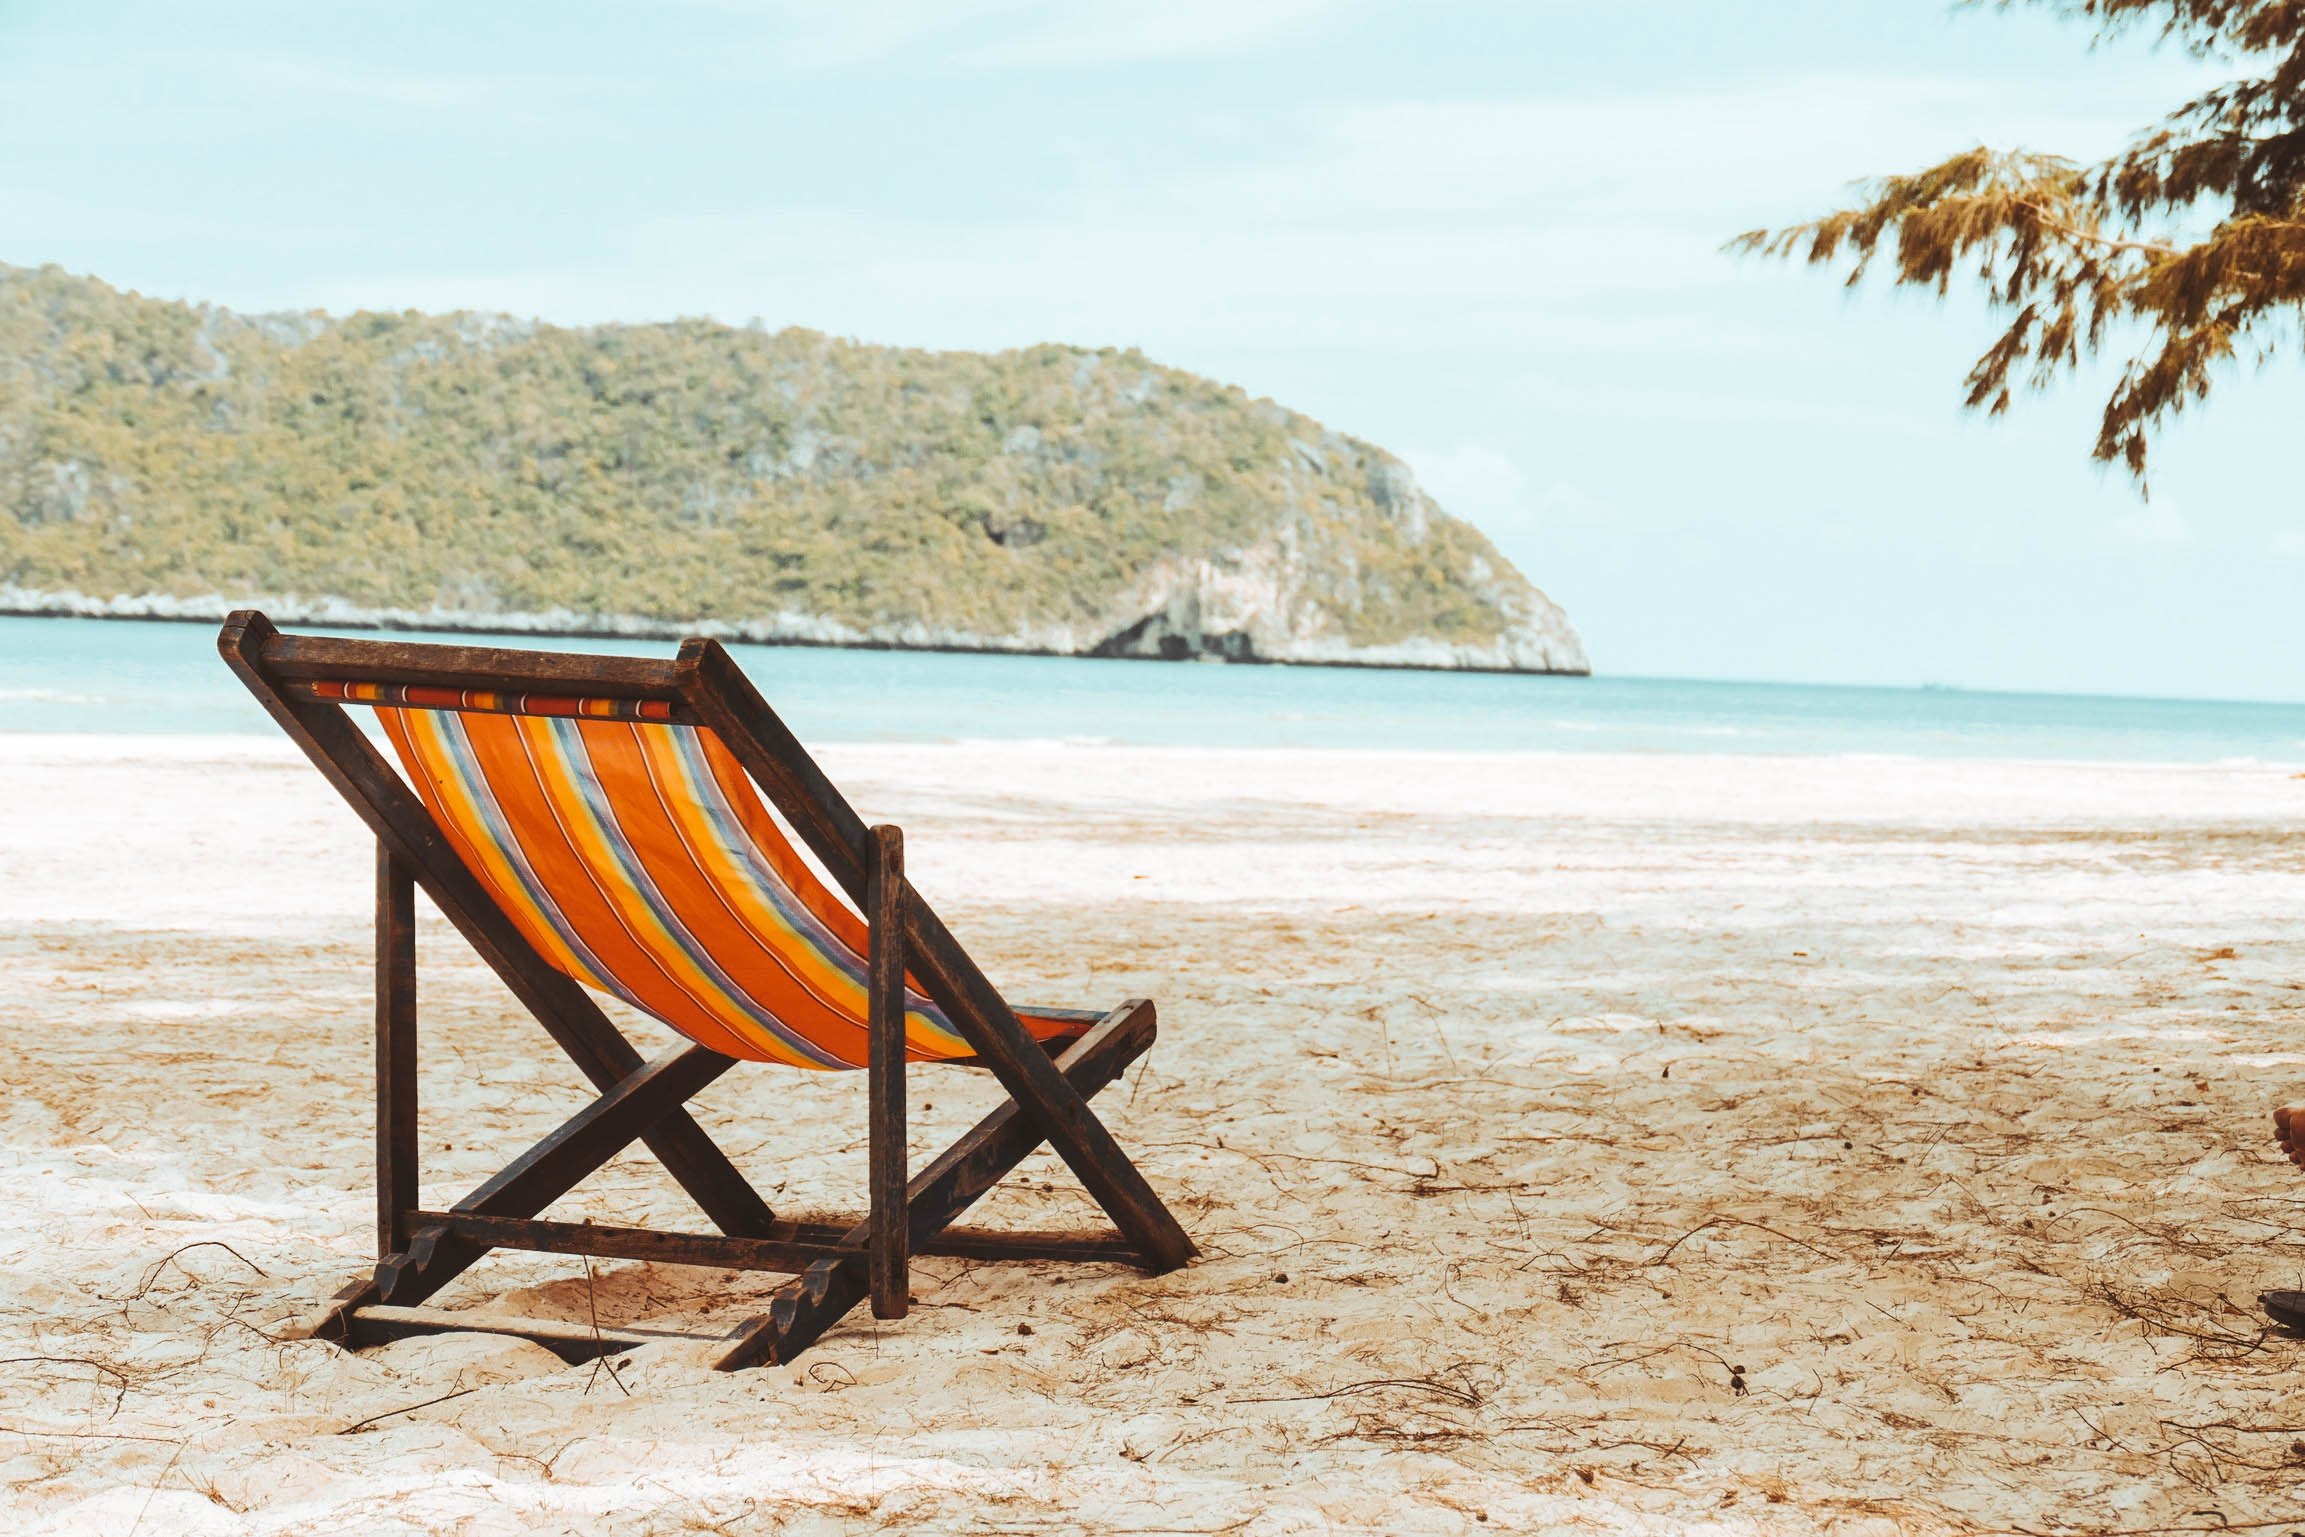 The beach chair is waiting for you. Take time for vacations or staycations.